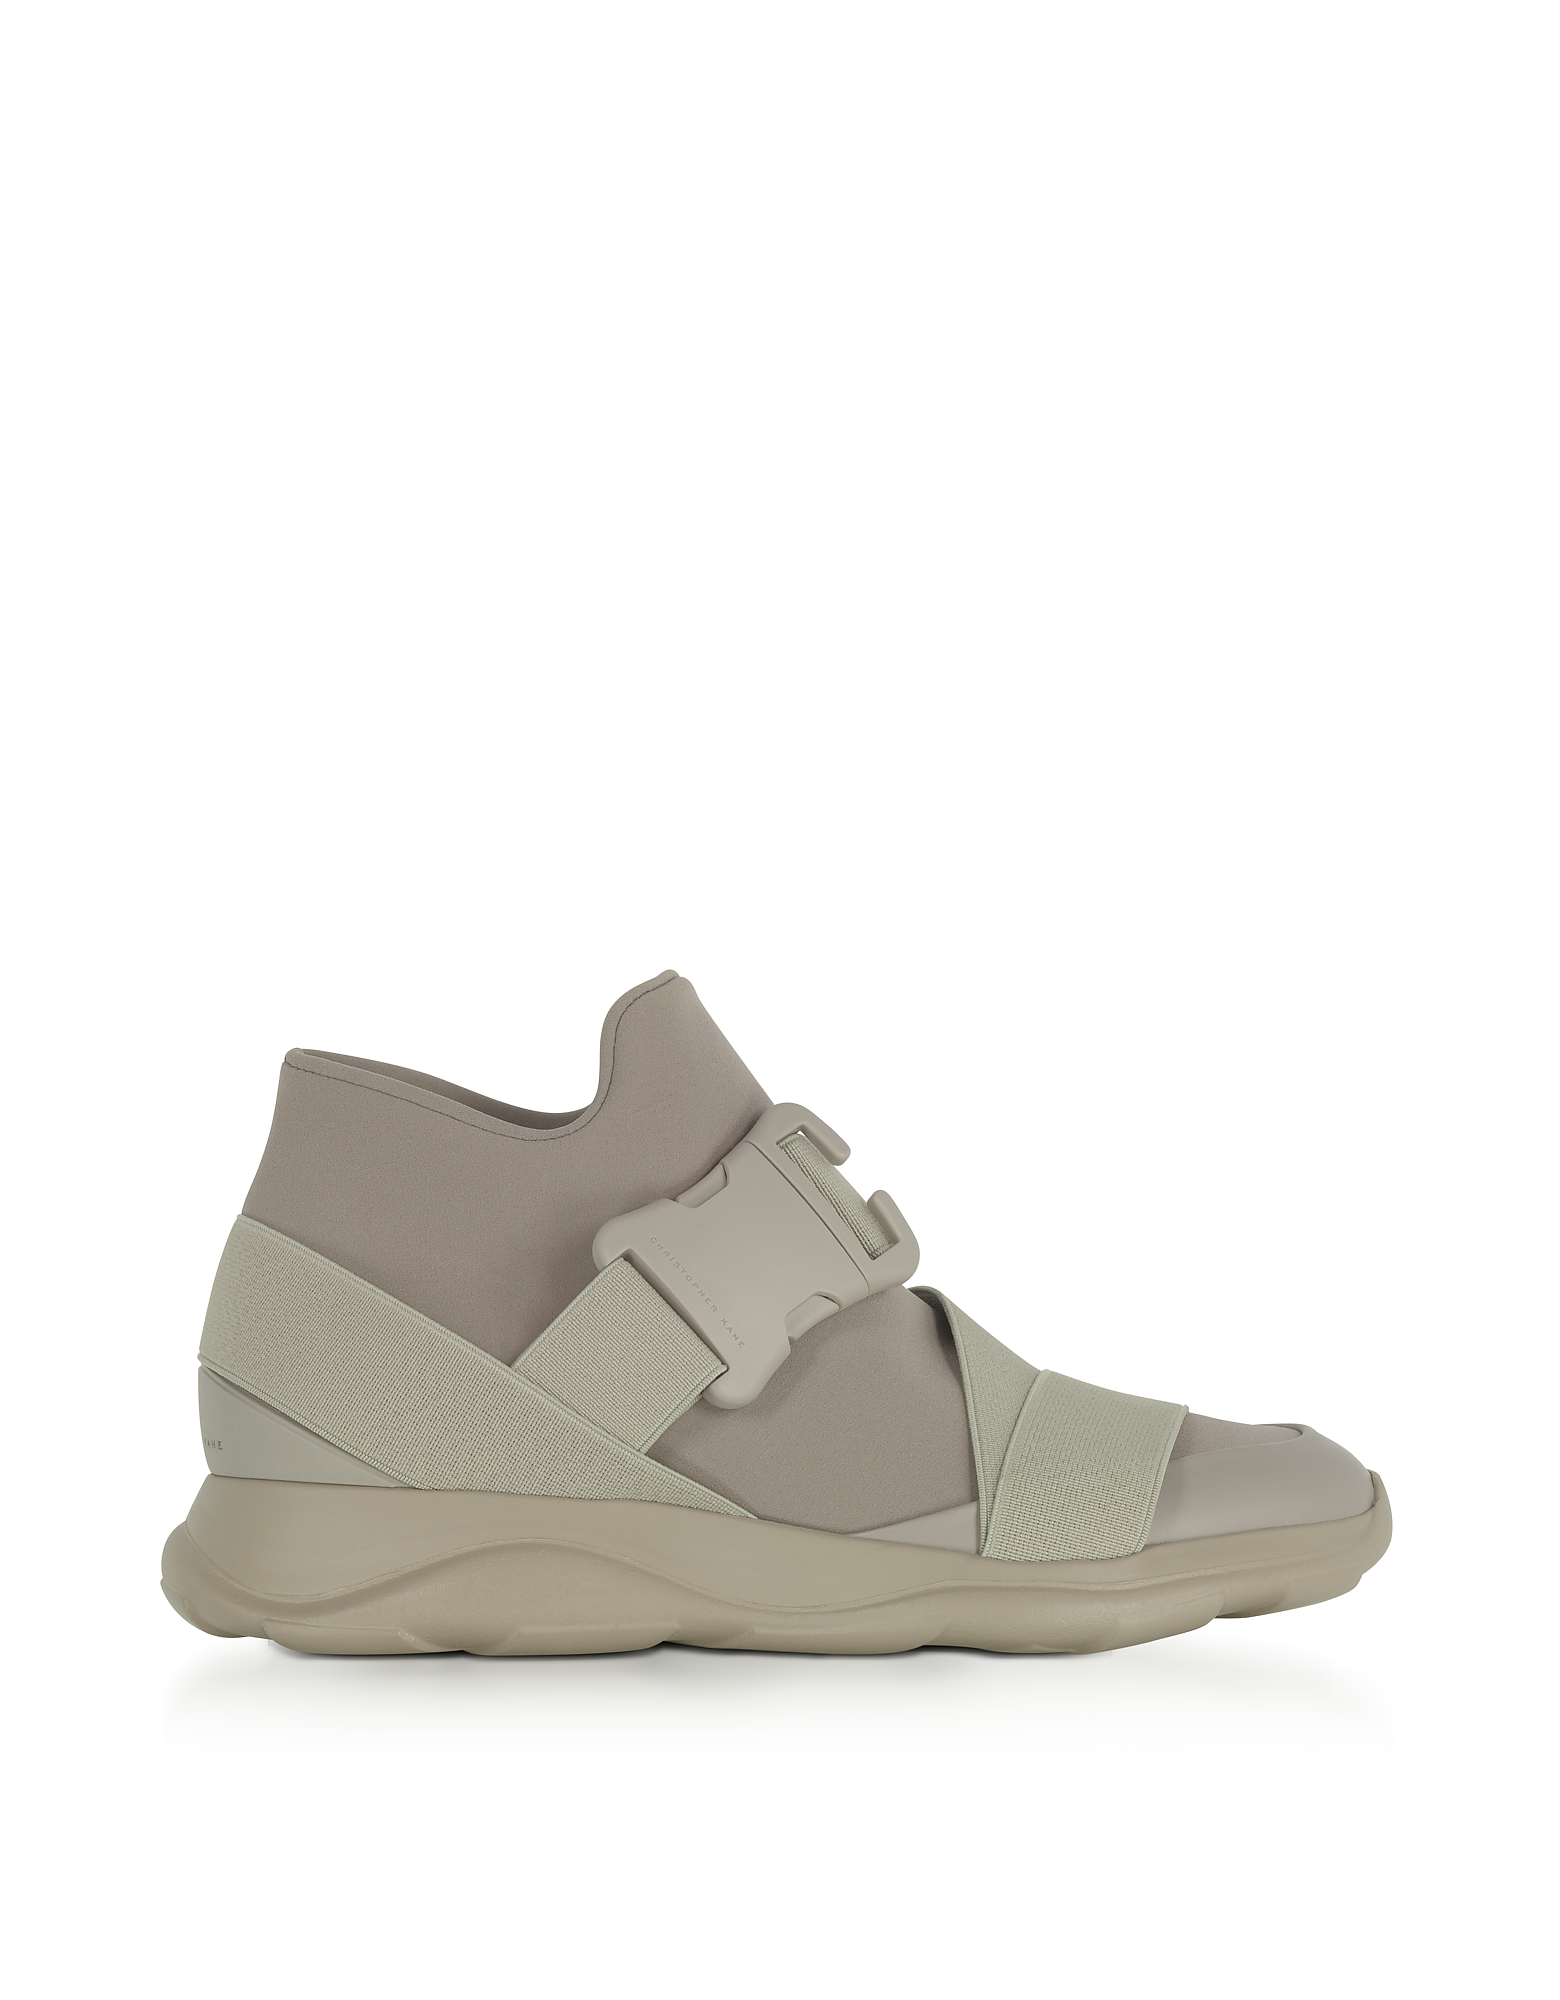 Christopher Kane Shoes, Putty Gray Neoprene High Top Women's Sneakers